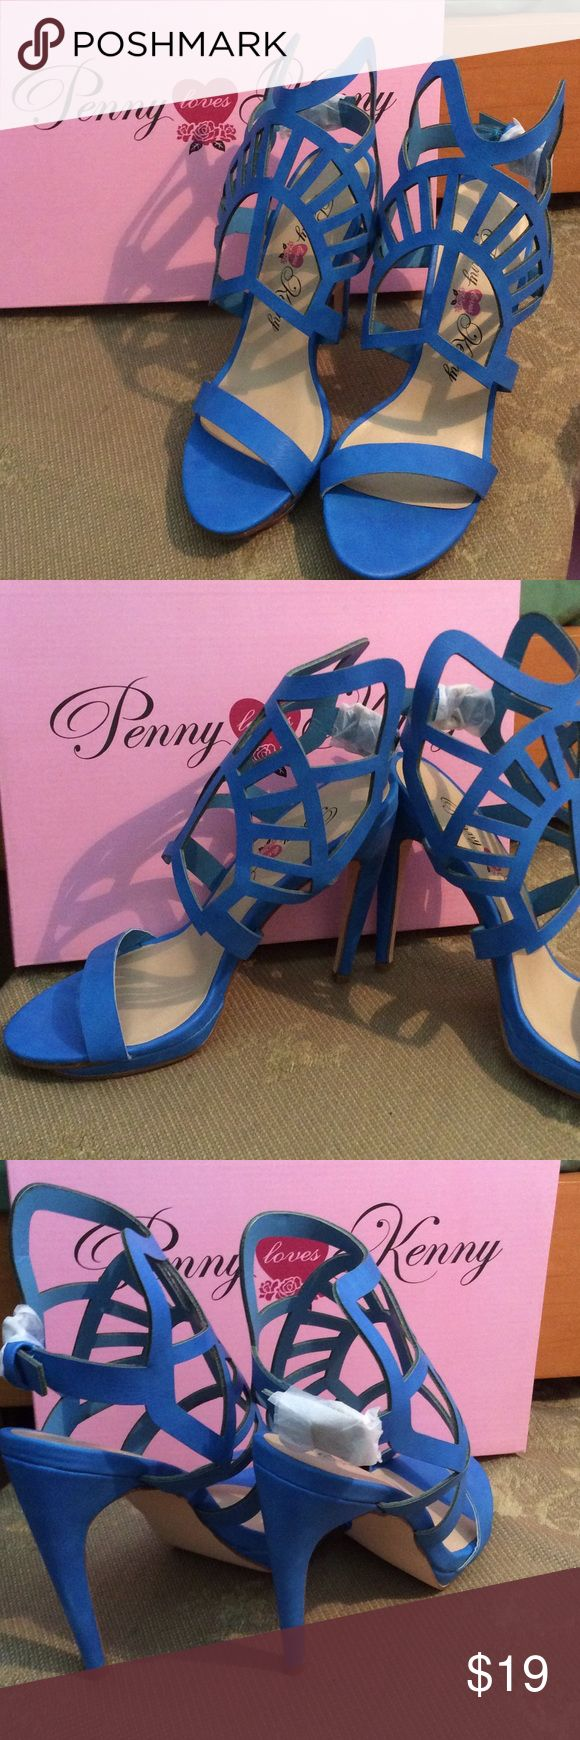 Blue new  laser cut cage shoes 8 last pair👠👠 Blue 5 inch heels. Cage styling with silver buckle in the back. Fun color for flirting with fall. Penny loves kenny Shoes Heels